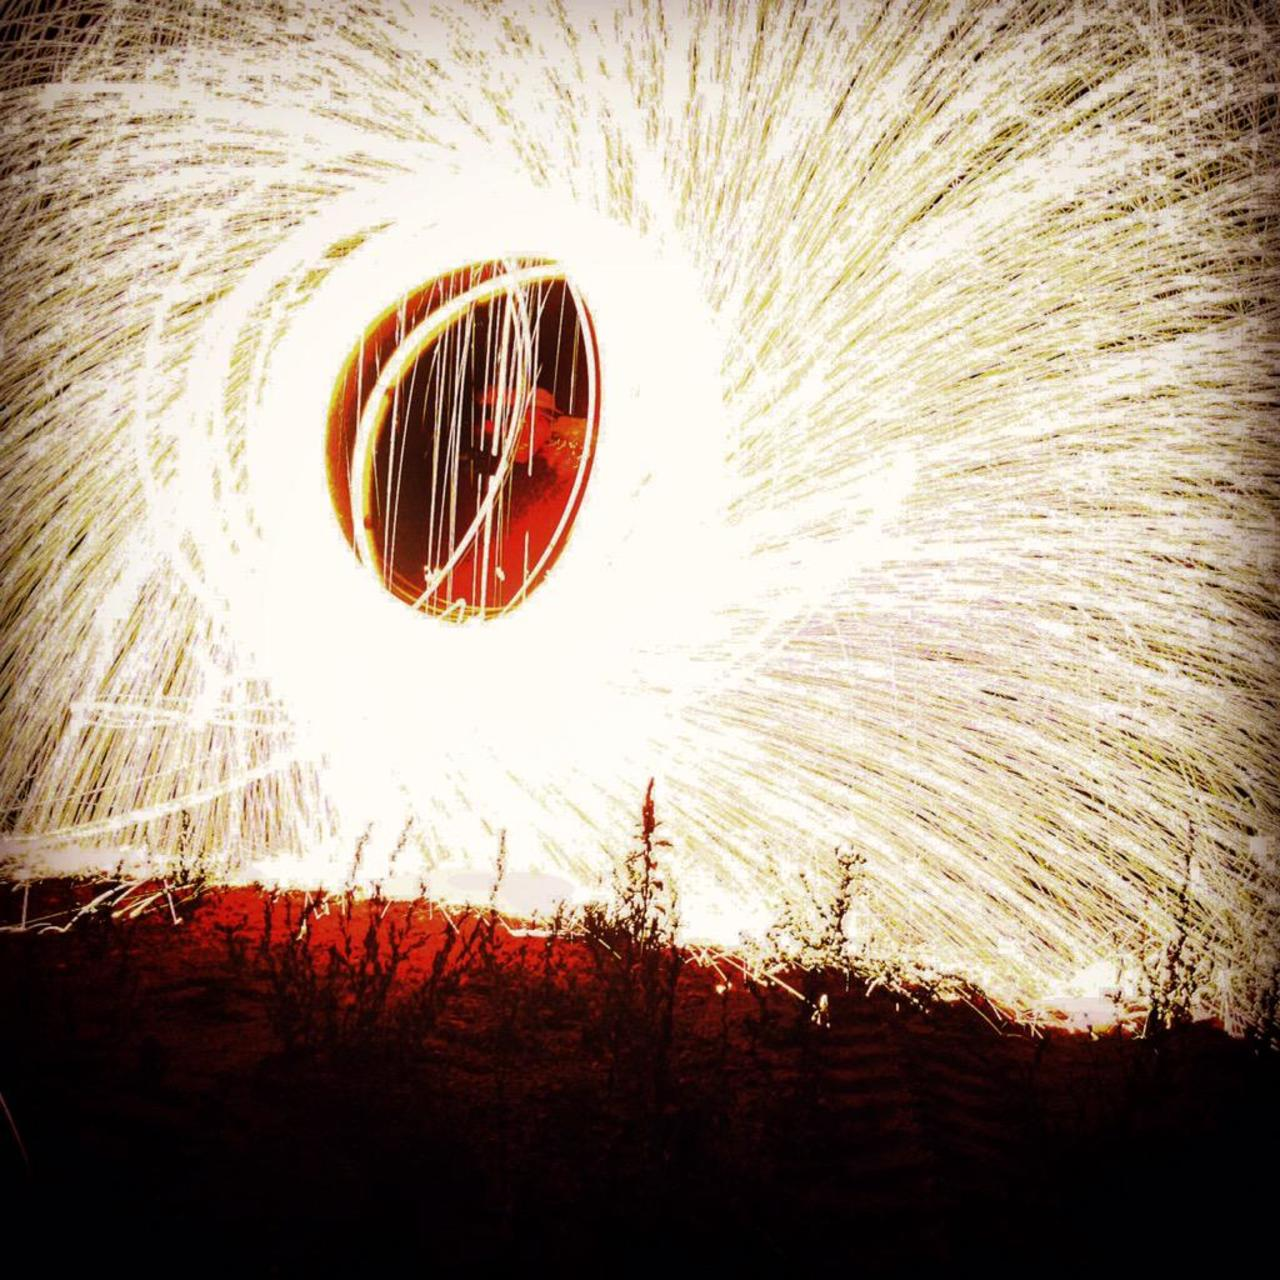 #sunset #lightart #light #P8NocniSvet #iphone #lightdrowing #lightpainting #red http://t.co/f533xJS0mD